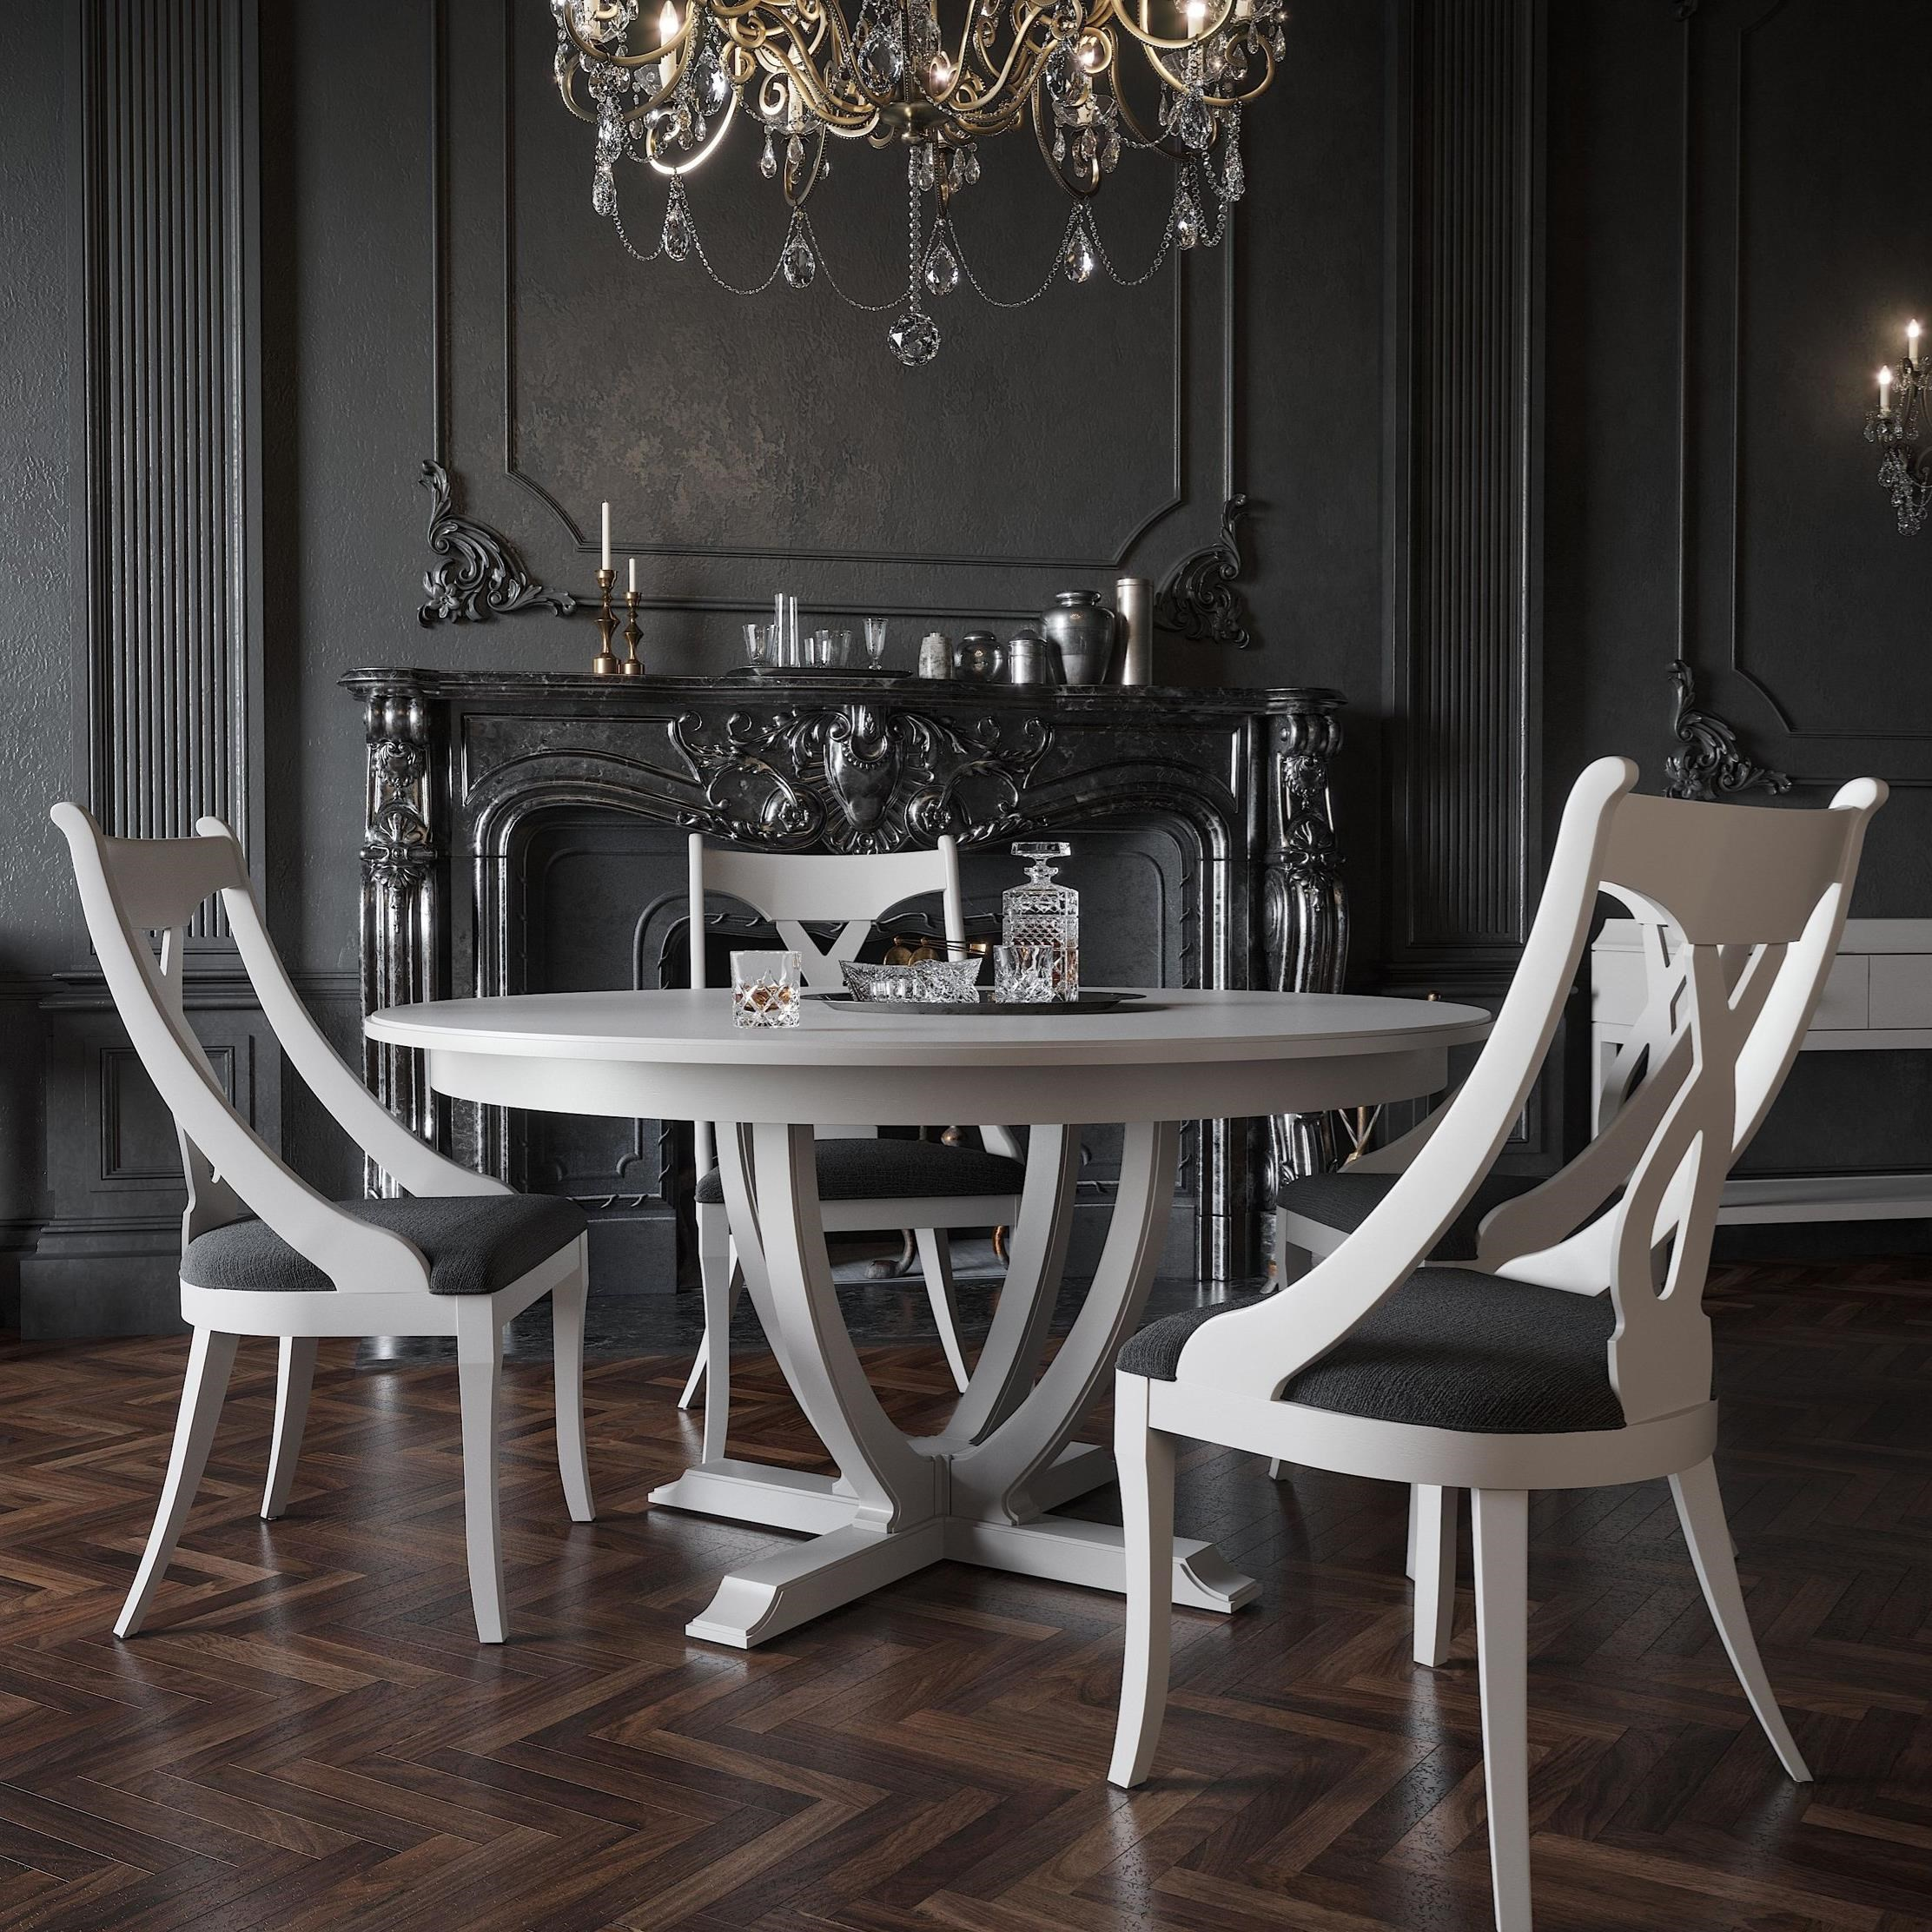 Classic Round Dining Table Set by Canadel at Jordan's Home Furnishings